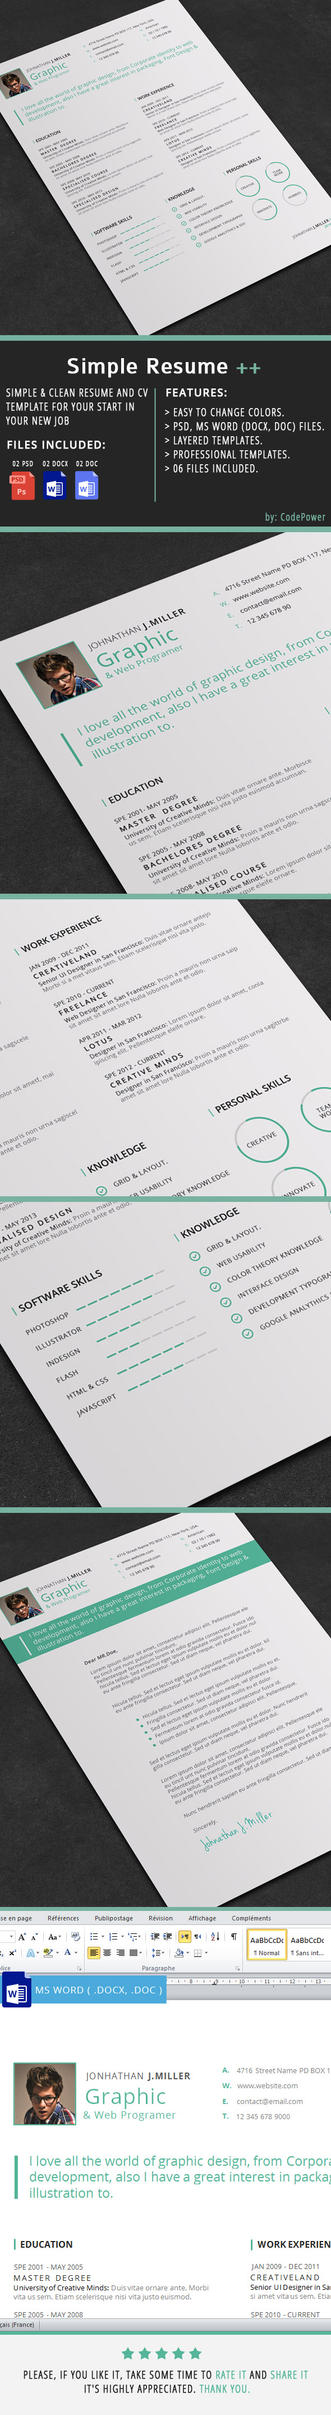 Simple Resume by khaledzz9